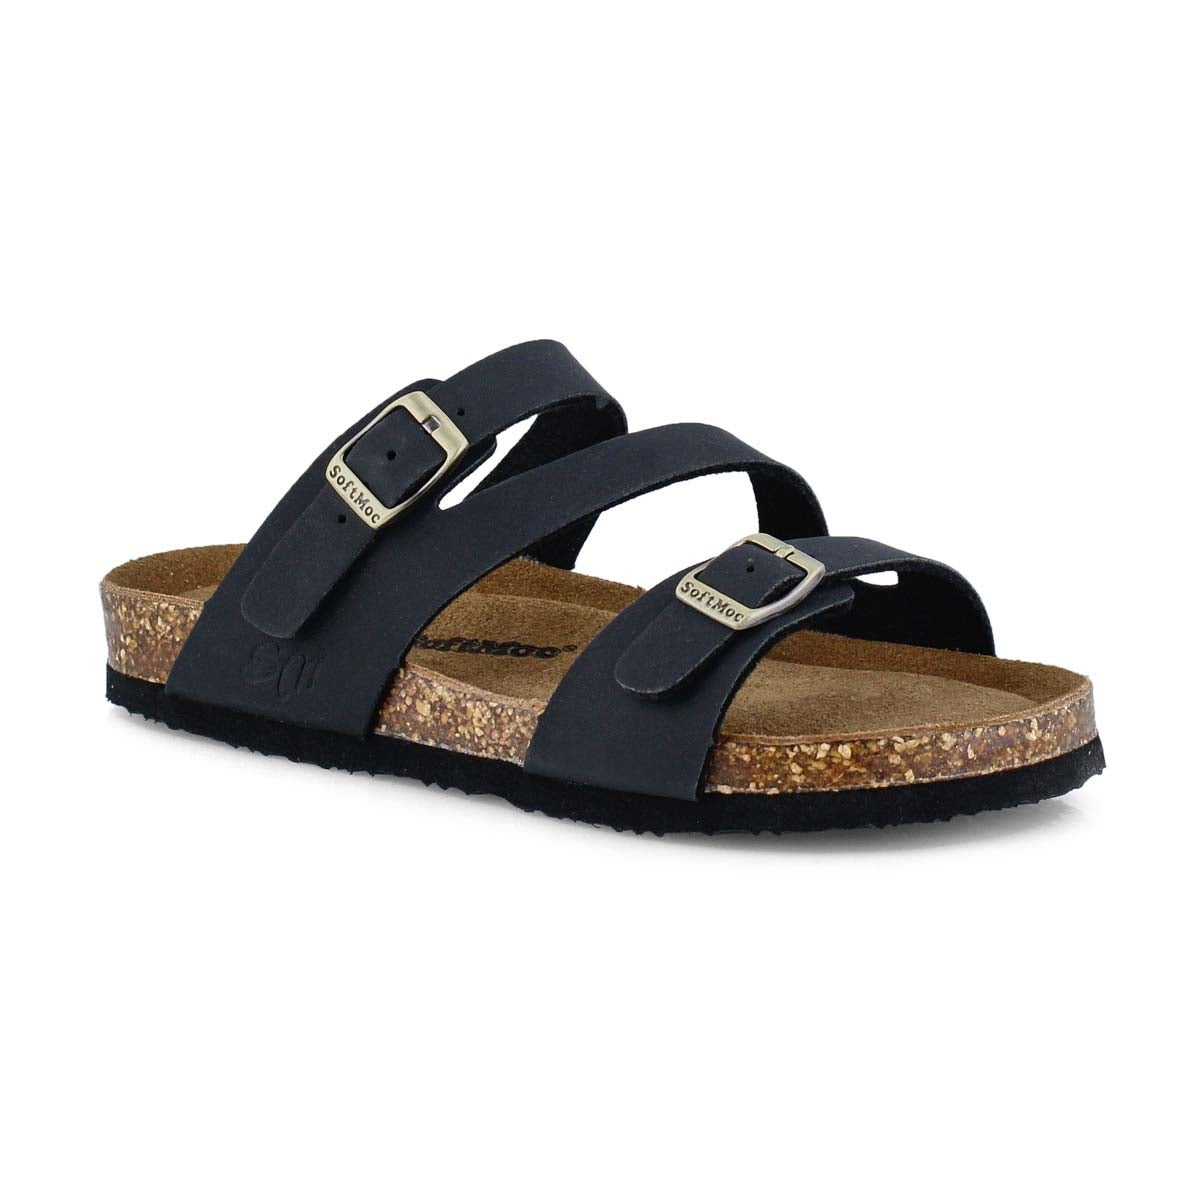 Girls AVALON 5 black crazyhorse memory foam sandal